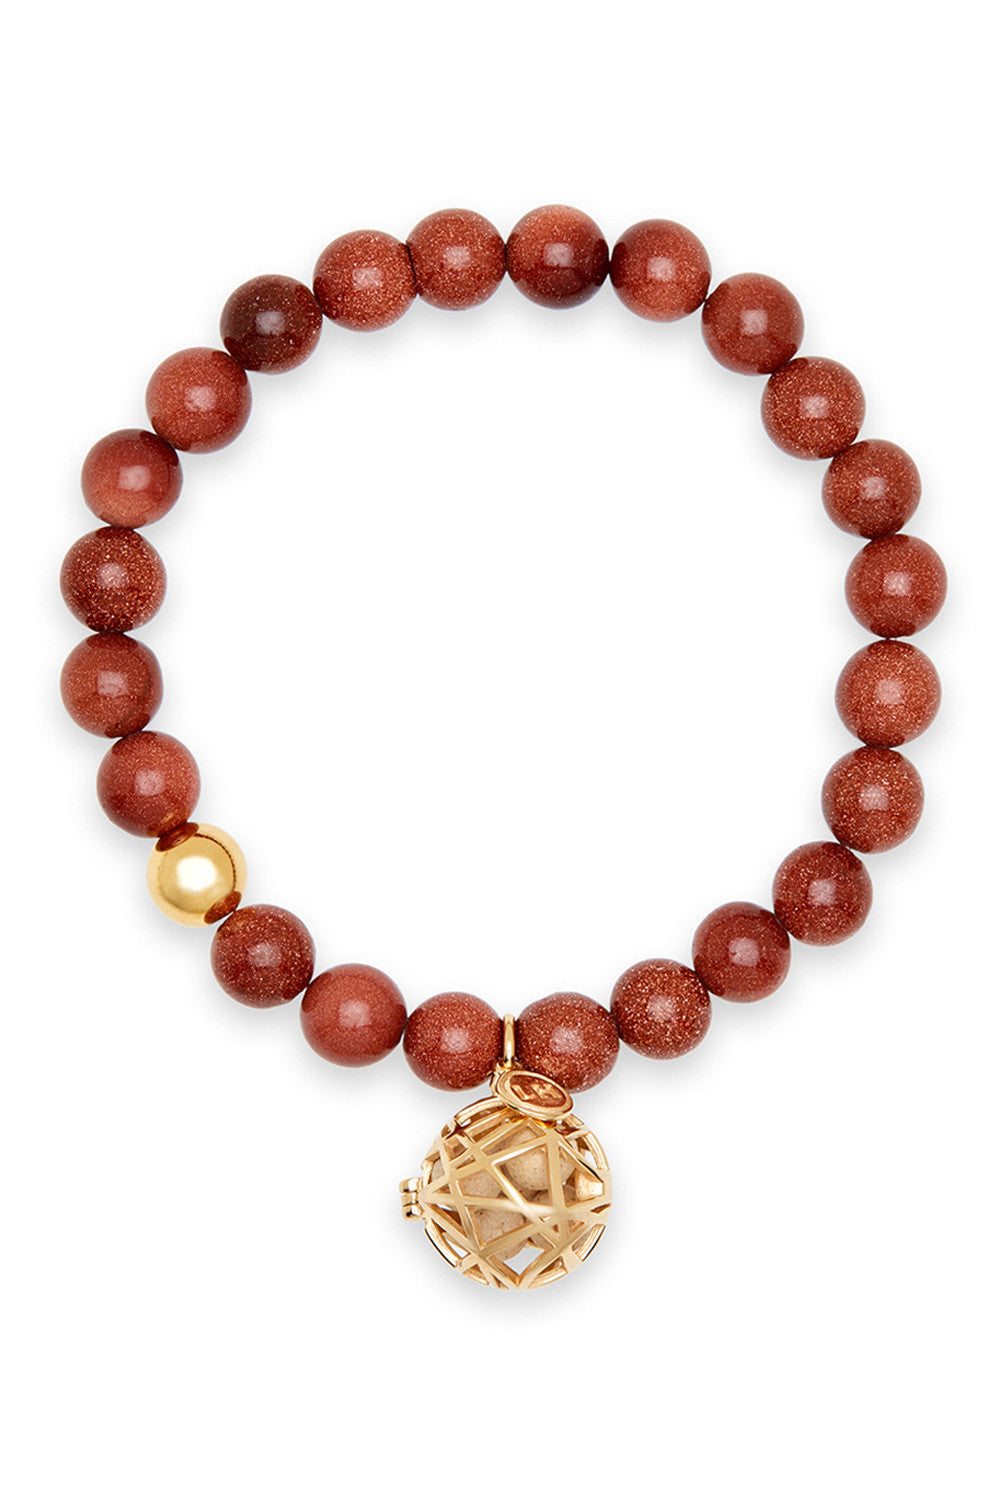 Cauda Bracelet with Nest Charm